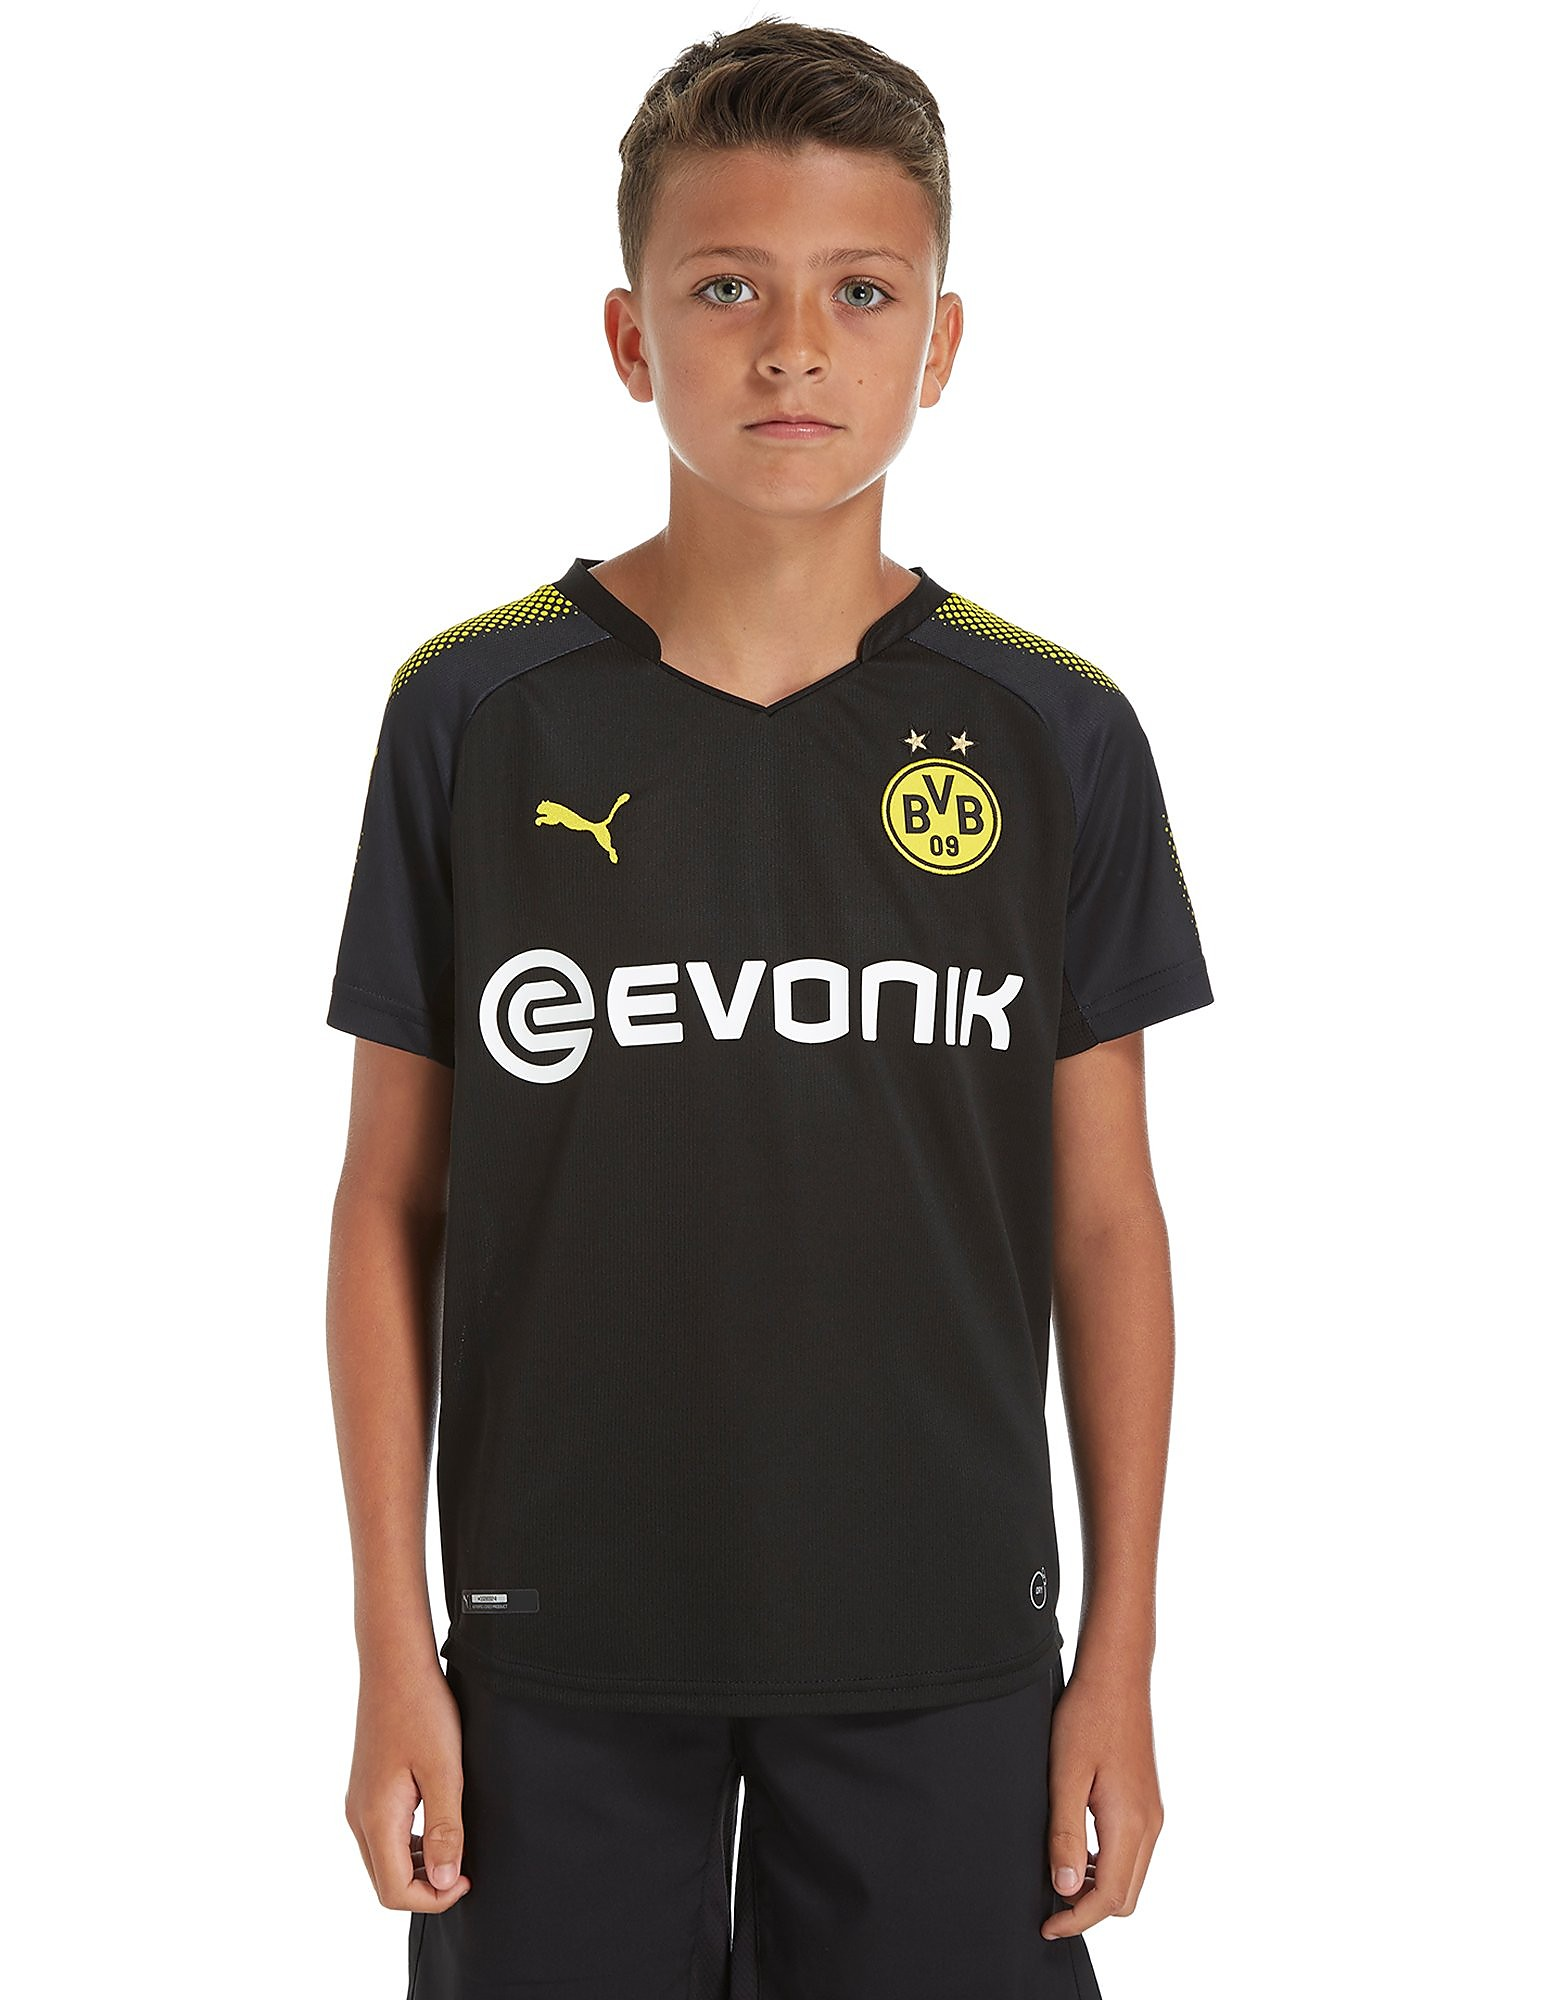 PUMA Borussia Dortmund 2017/18 Away Shirt Junior